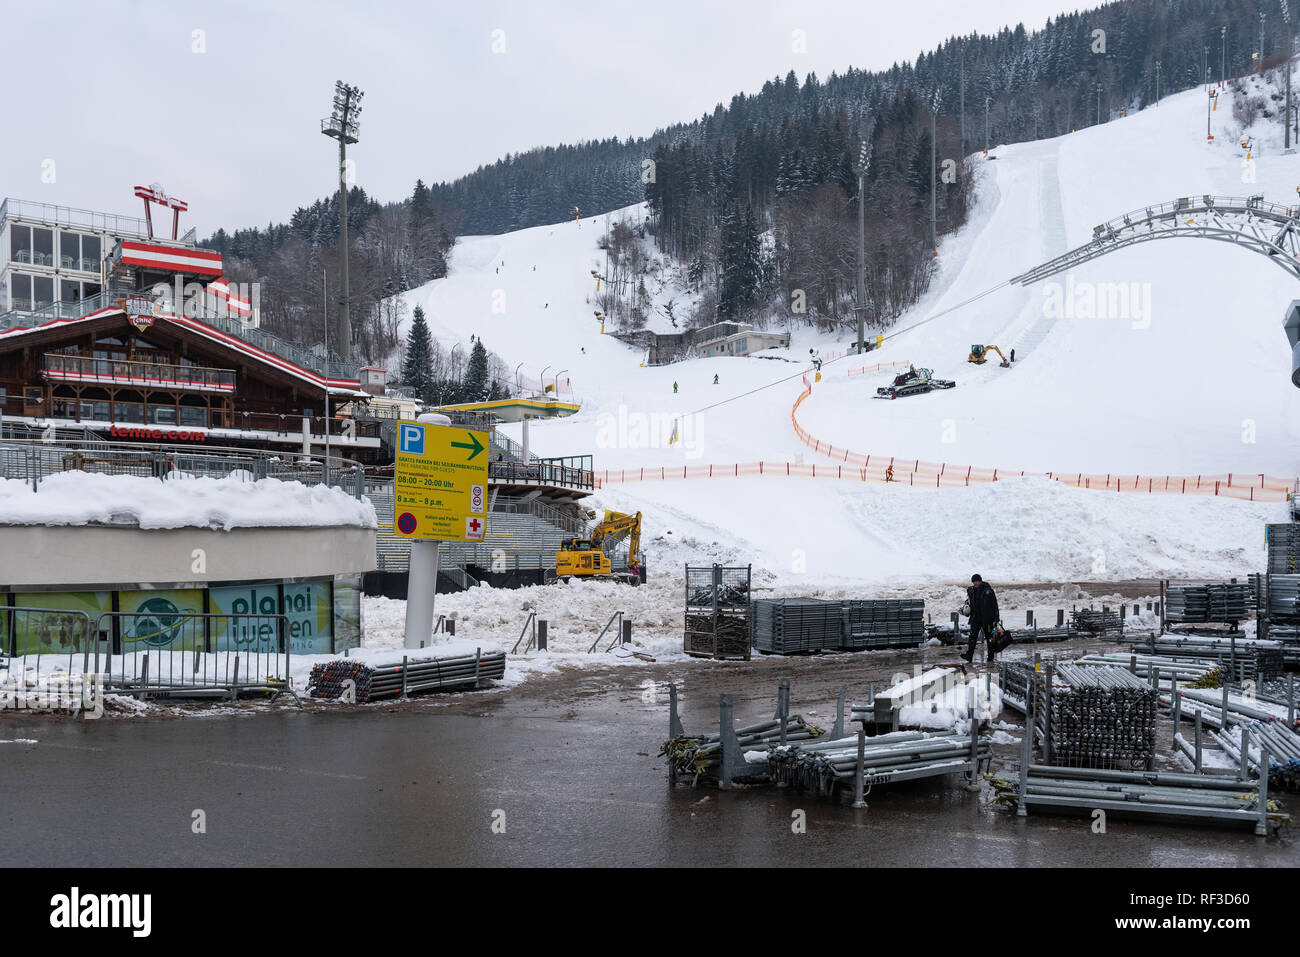 Schladming, Styria, Austria. 24th Jan, 2019. Construction works on Planai Stadium befor The Nightrace in Schladming, Men's World Cup Night Slalom 29.01.2019 - 22nd Night Slalom on the Planai, Austria Credit: Tomasz Koryl/Alamy Live News - Stock Image